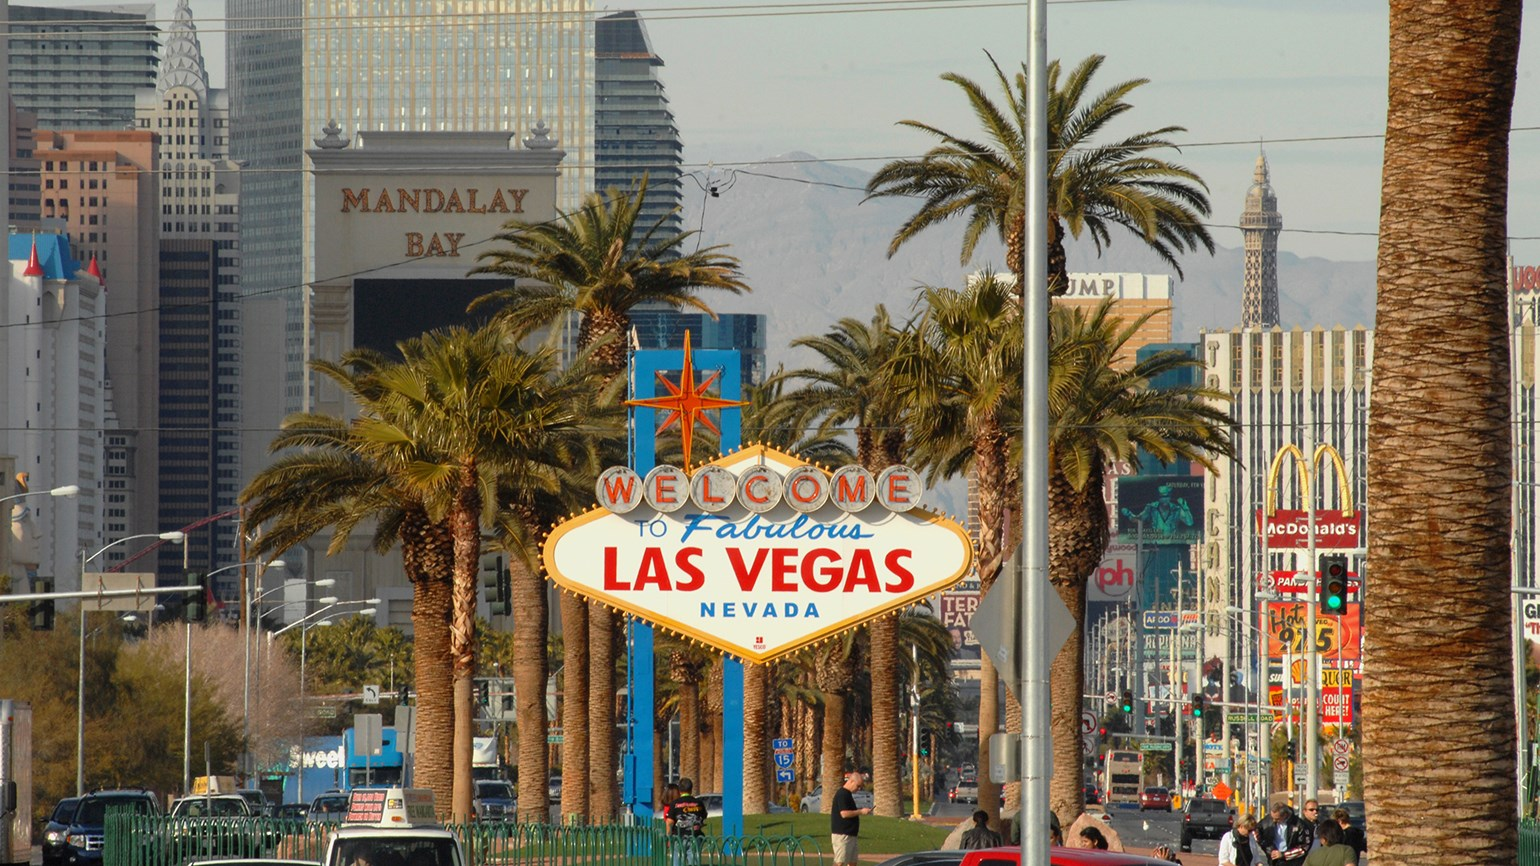 Las Vegas sets record for visitors, surpassing 40 million